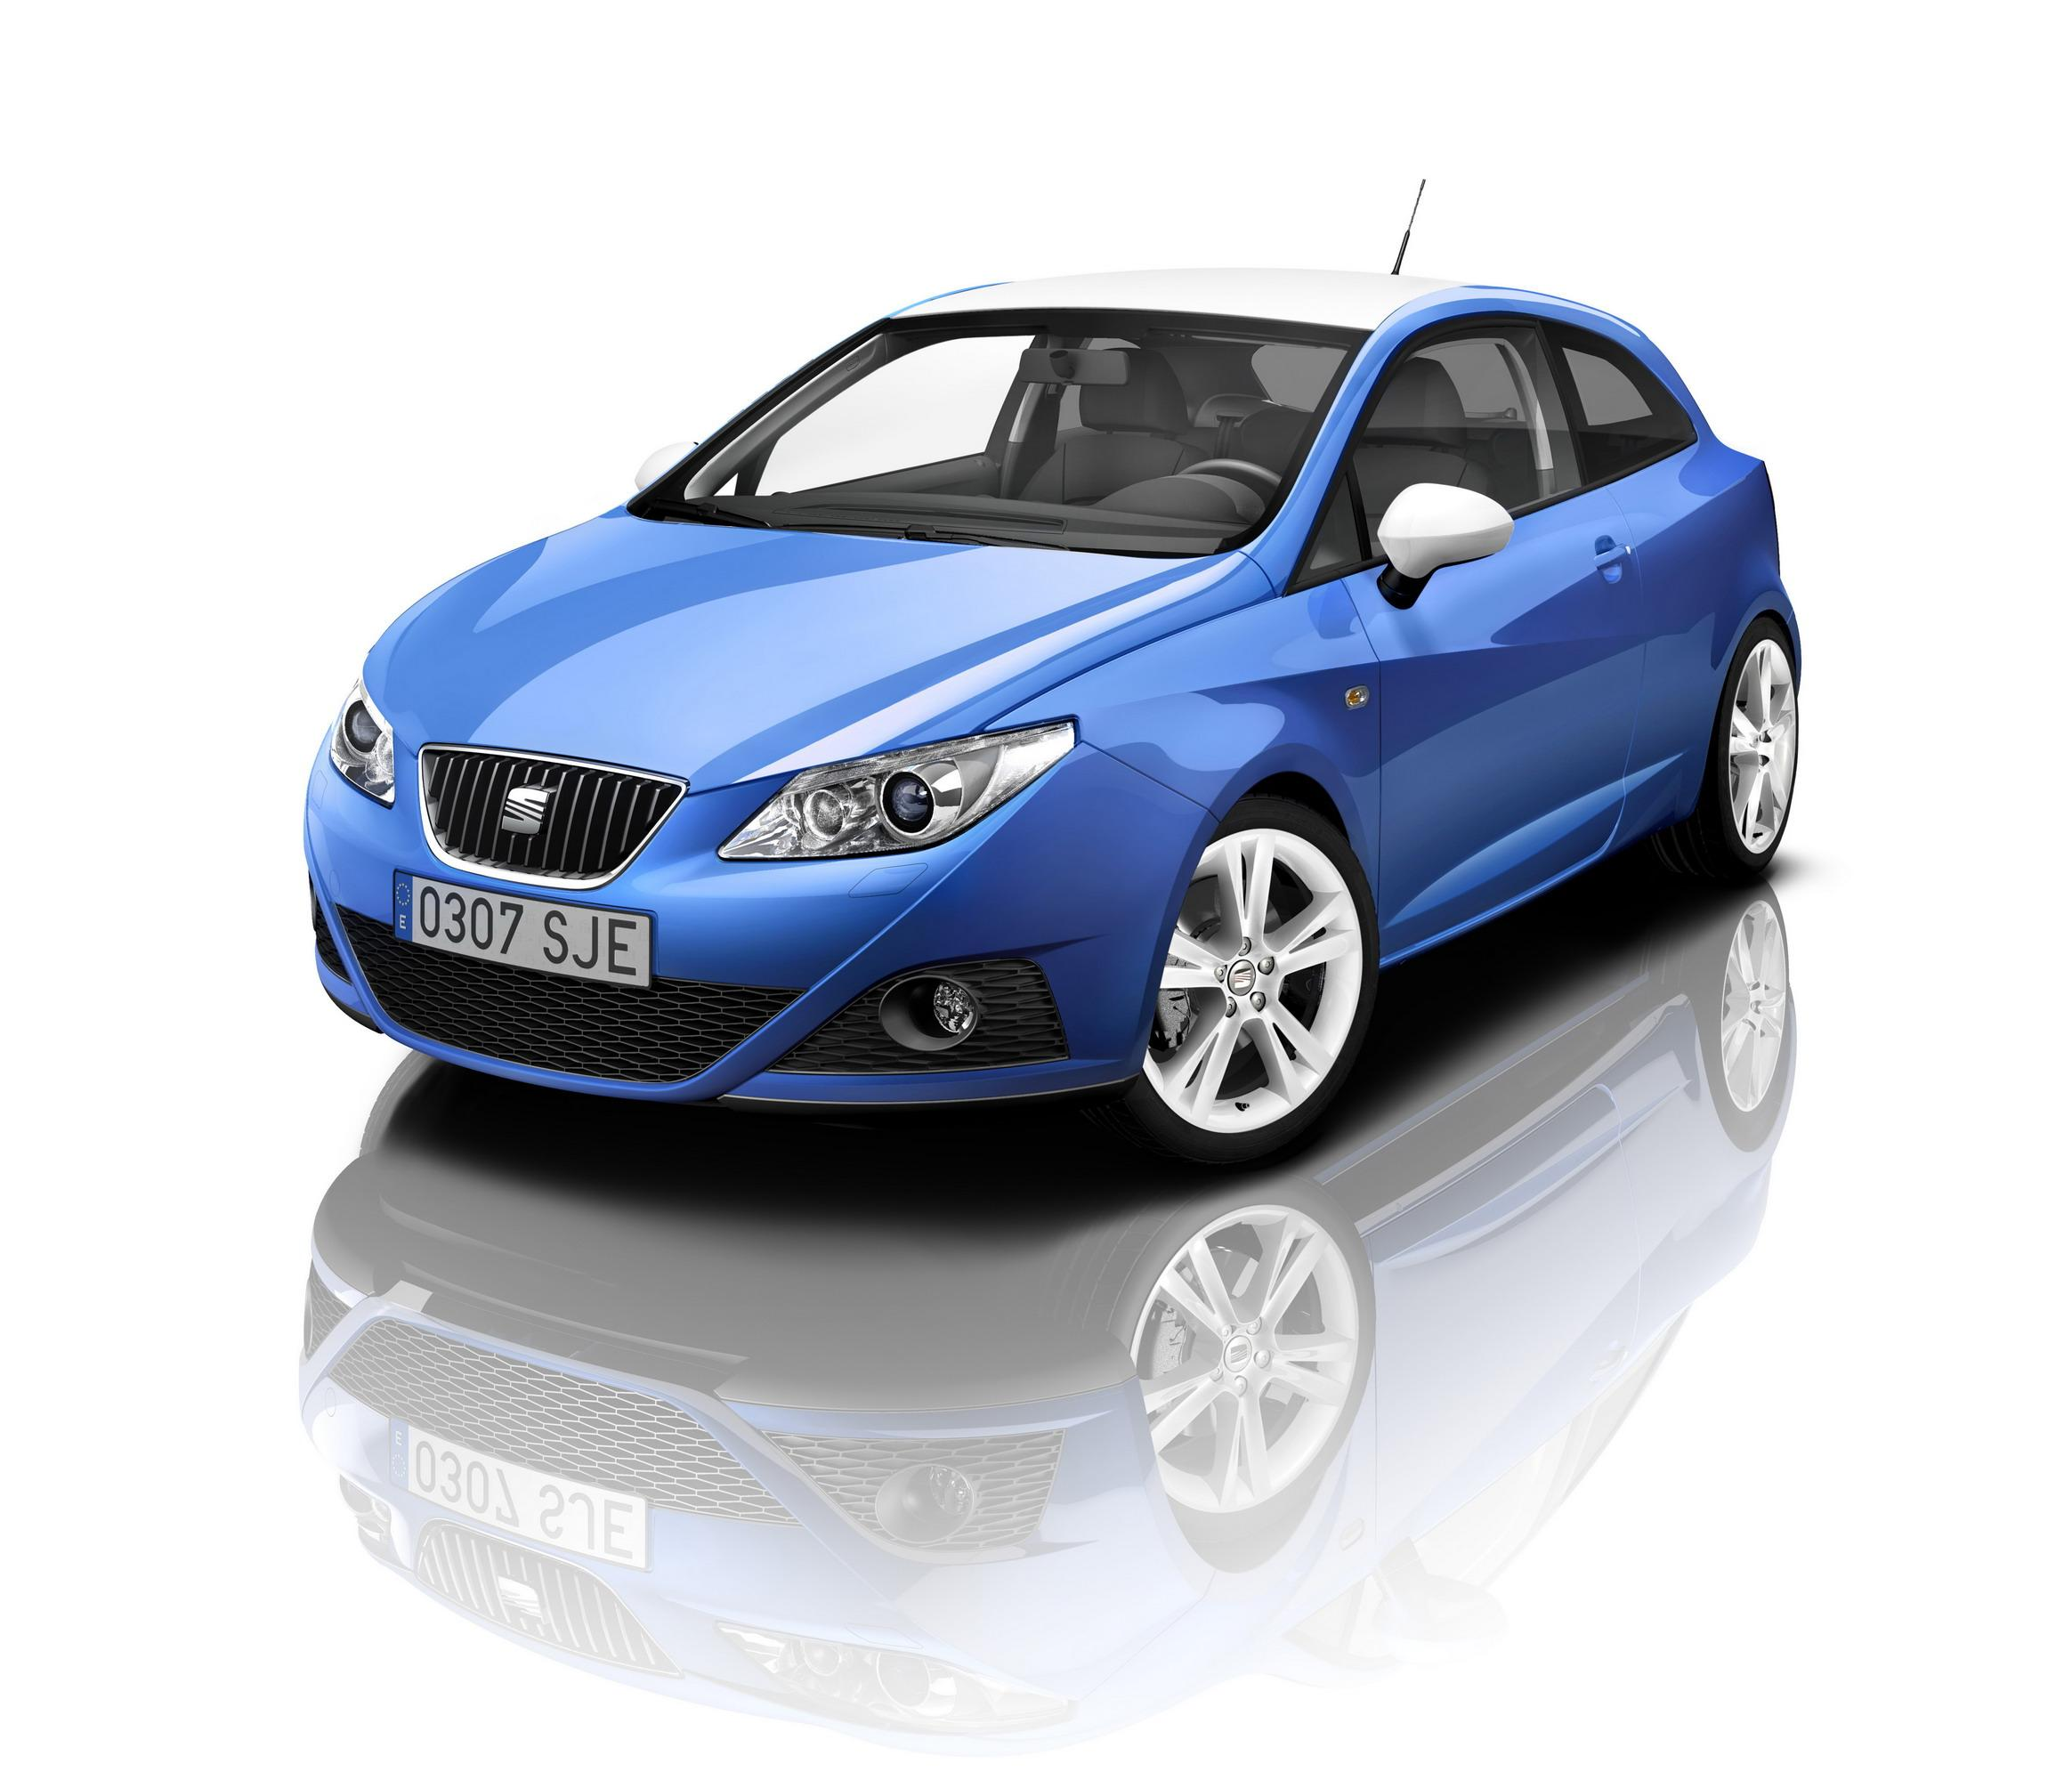 2009 seat ibiza sc color edition top speed. Black Bedroom Furniture Sets. Home Design Ideas